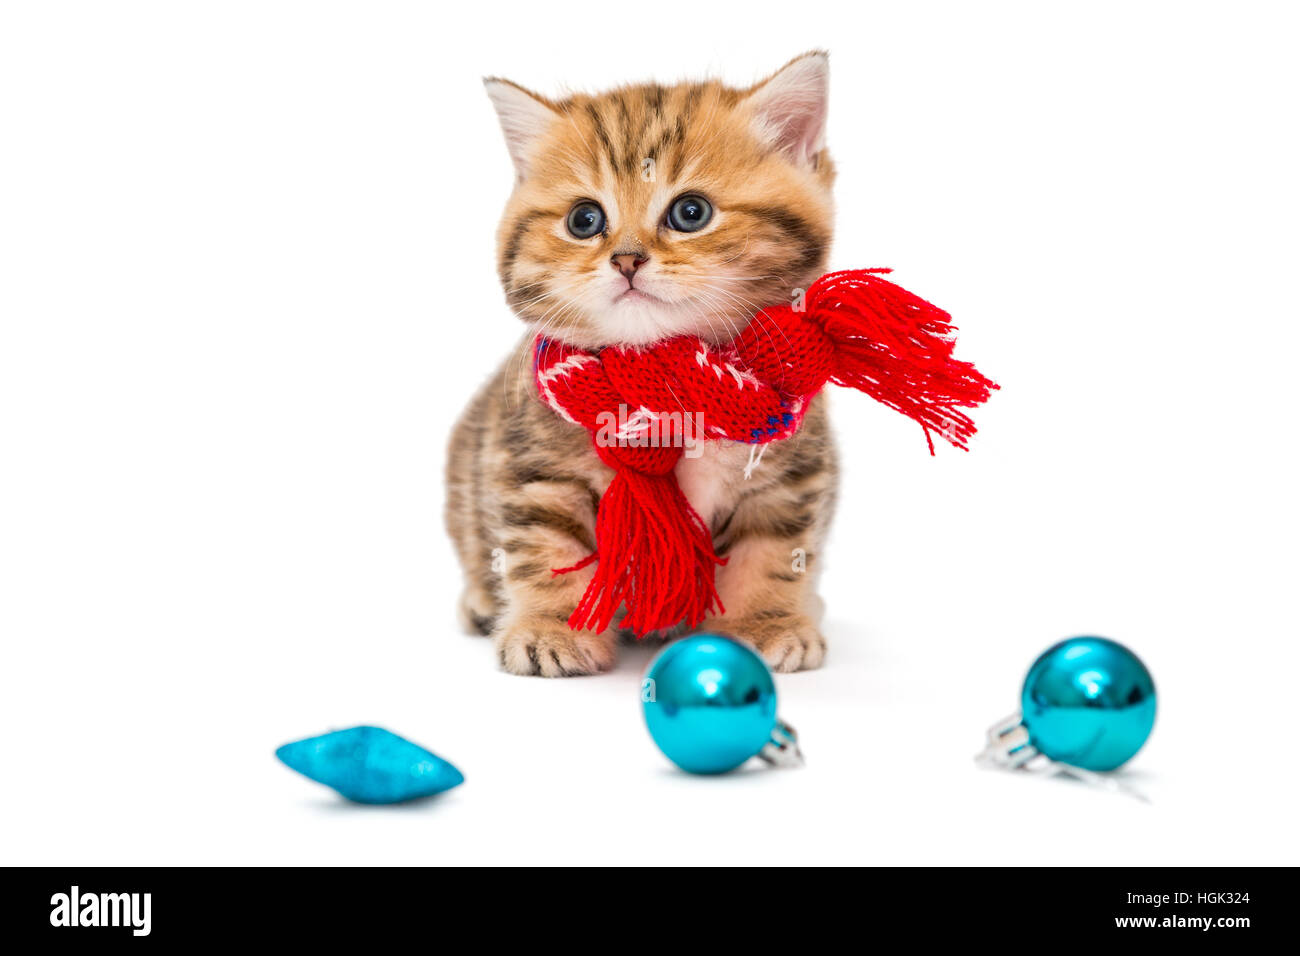 Cute kitten breeds British Marble in a red scarf Stock